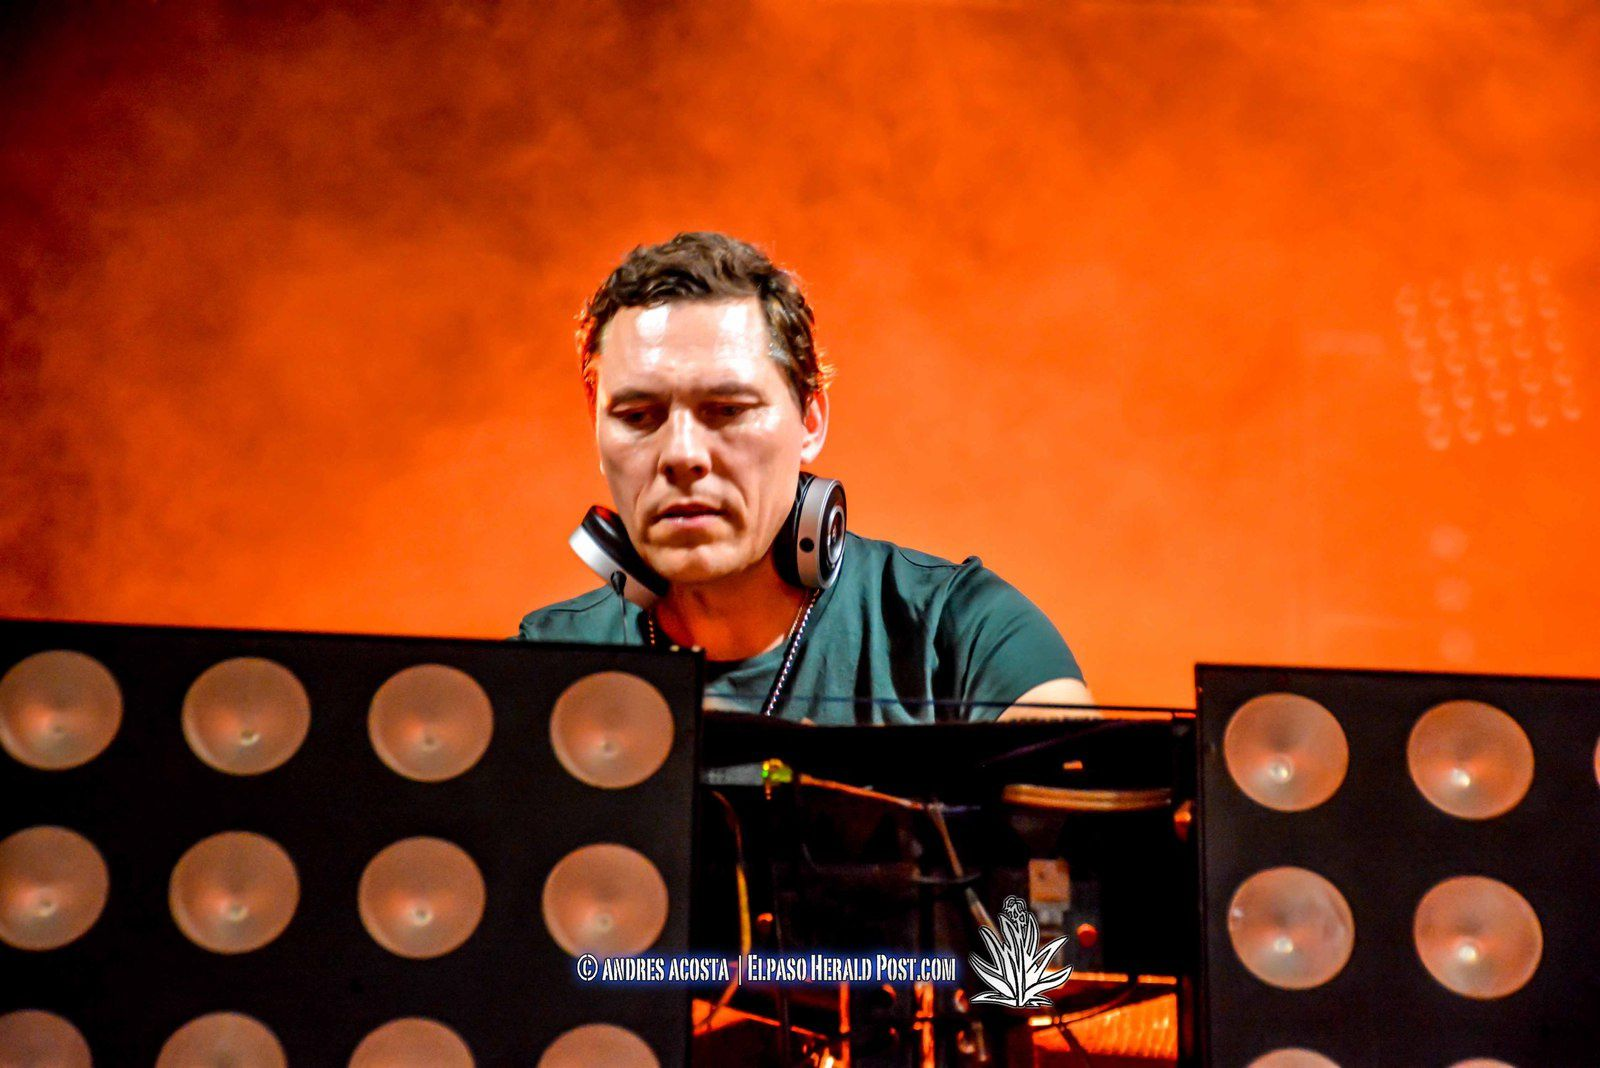 Tiësto photos | Neon Desert Music Festival | El Paso, TX - May 29, 2016